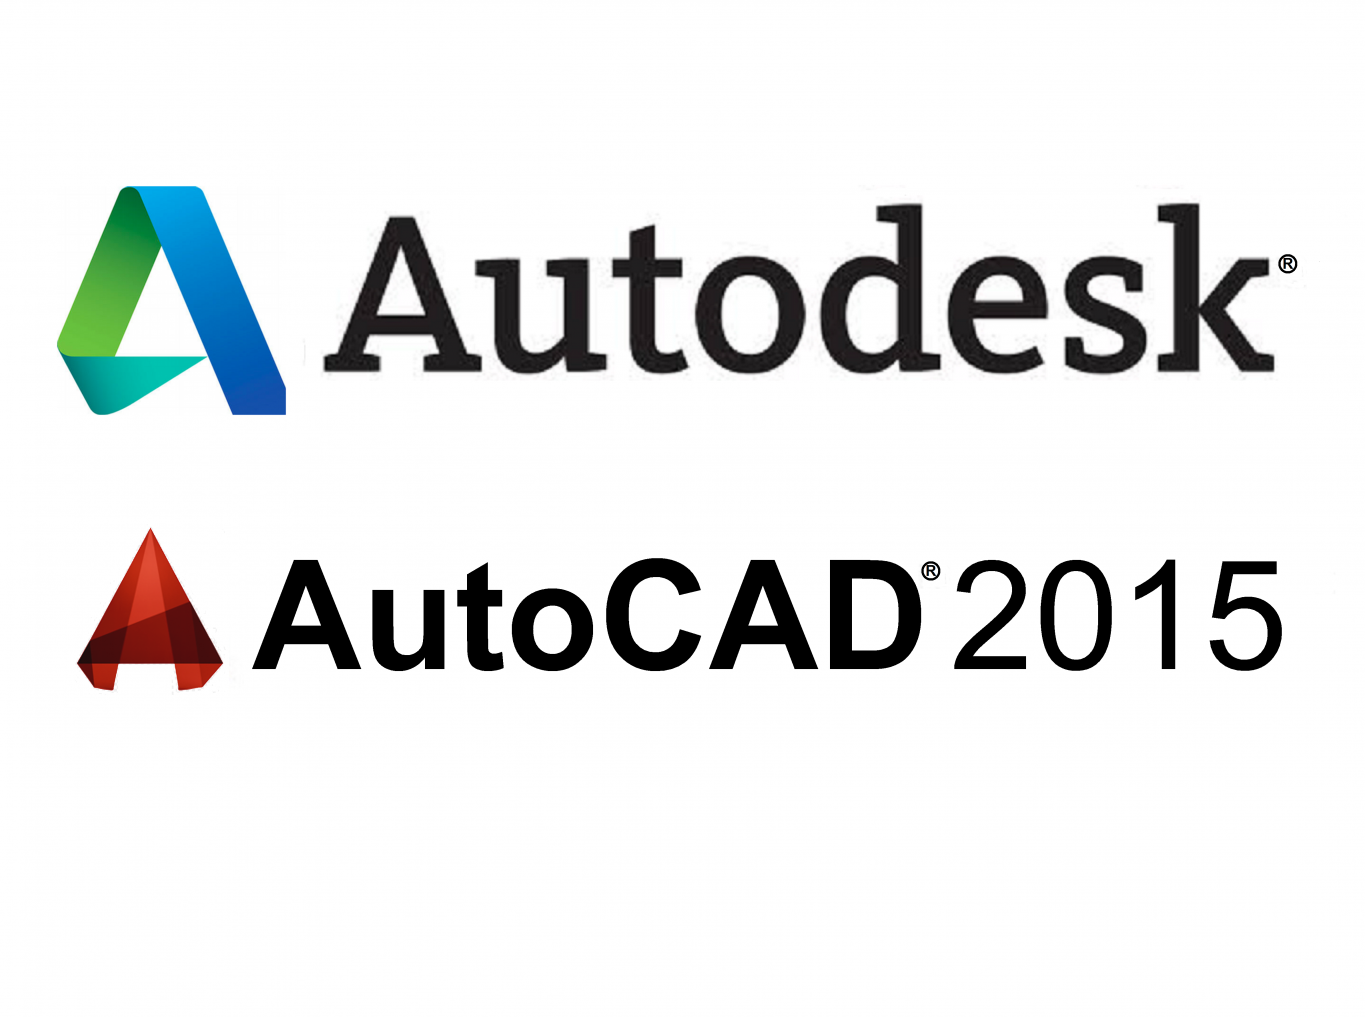 AutoCAD 2015 - Commercial License FULL